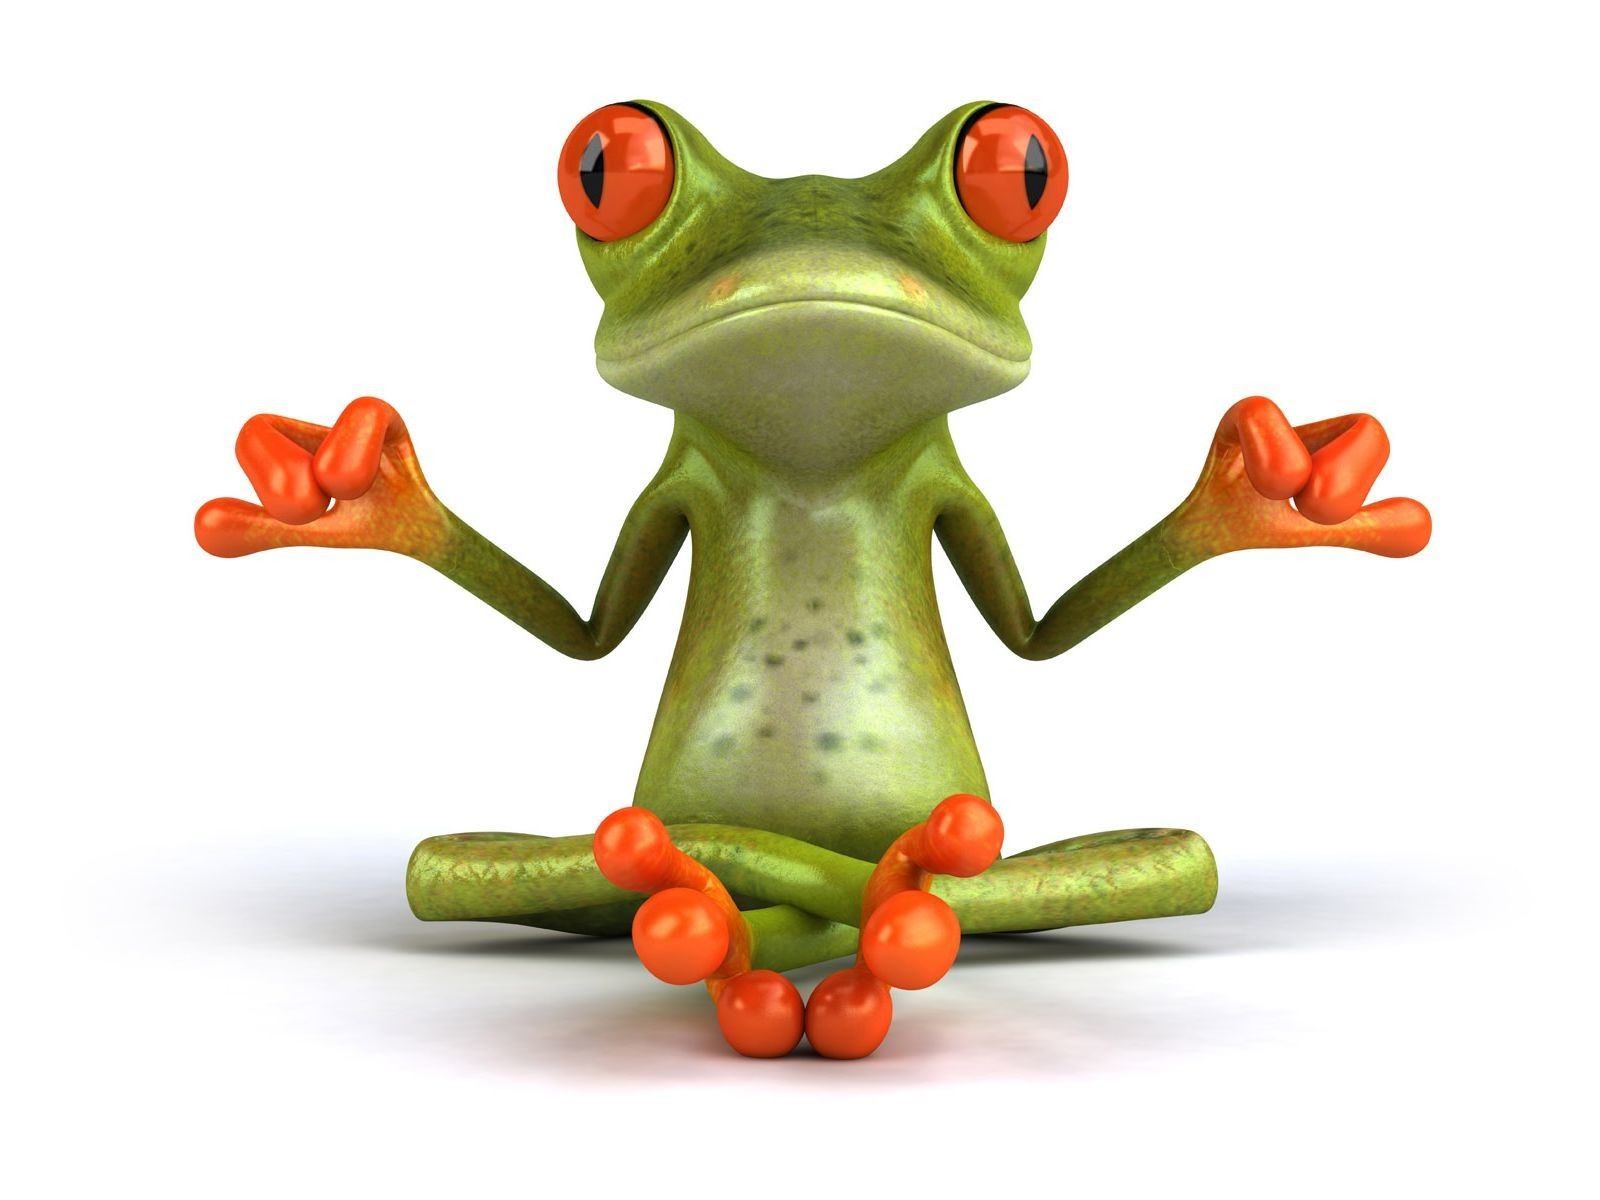 Hd frog cartoon wallpaper hd wallpapers picture cartoon - Frog cartoon wallpaper ...